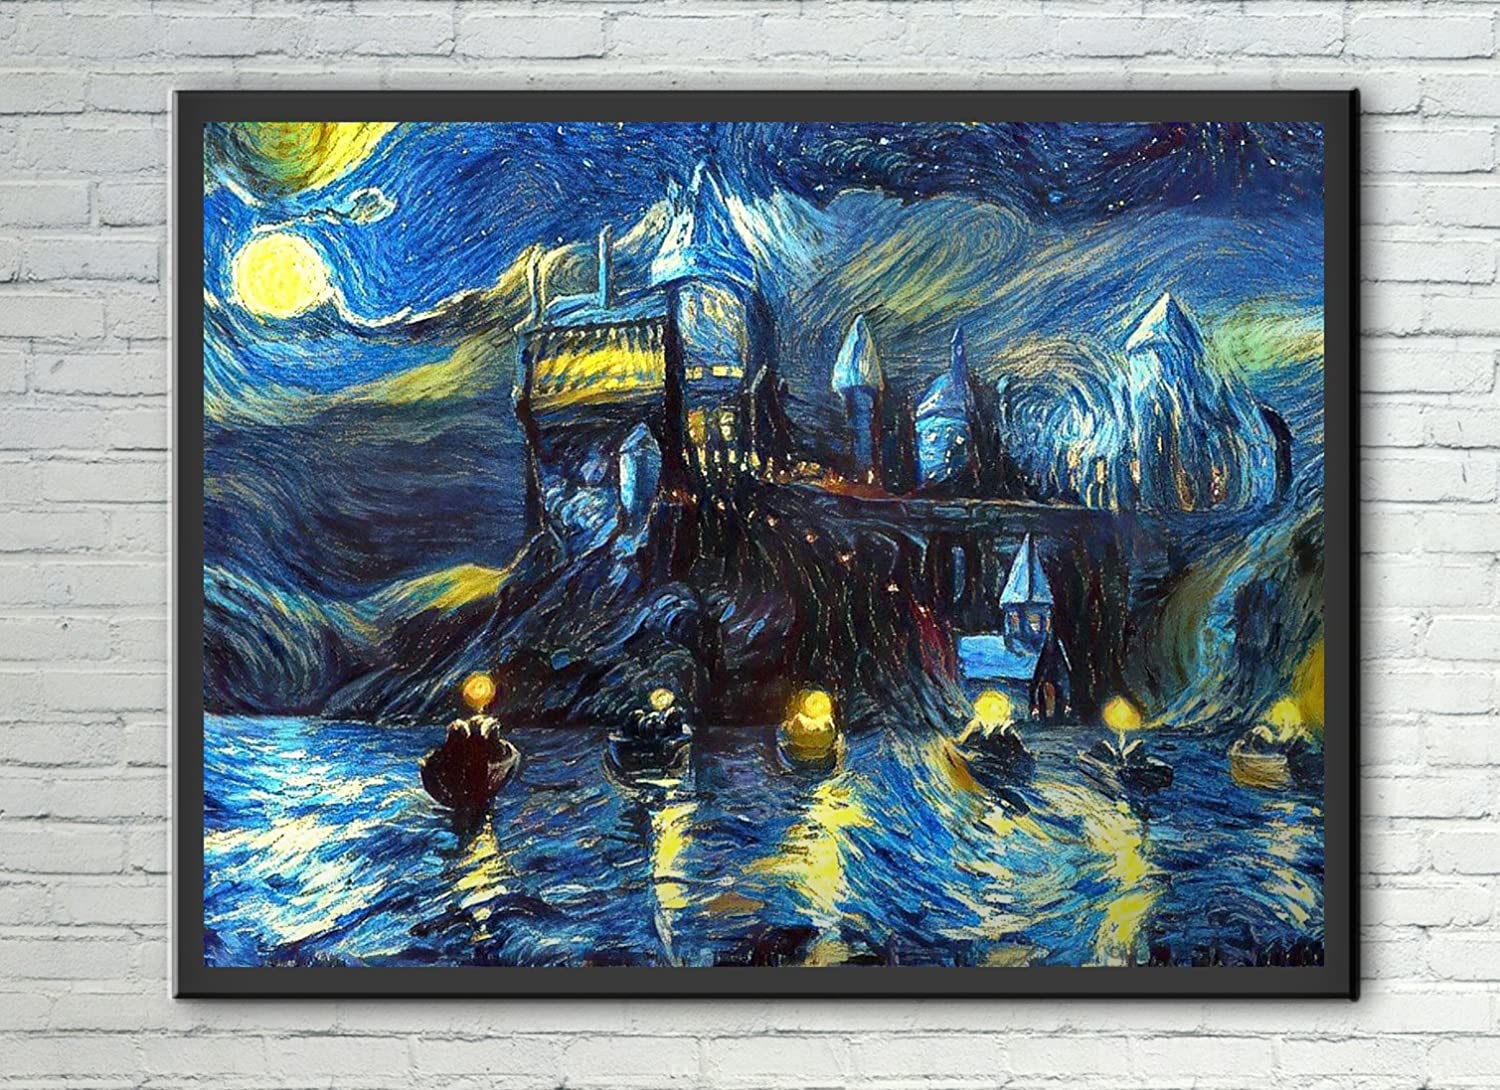 04ff7a6658e3 Amazon.com  Westlake Art - Starry Night Castle Night Boats - 20x24 Poster  Print Wall Art - Abstract Artwork Home Decor Office Birthday Unframed 20x24  Inch ...